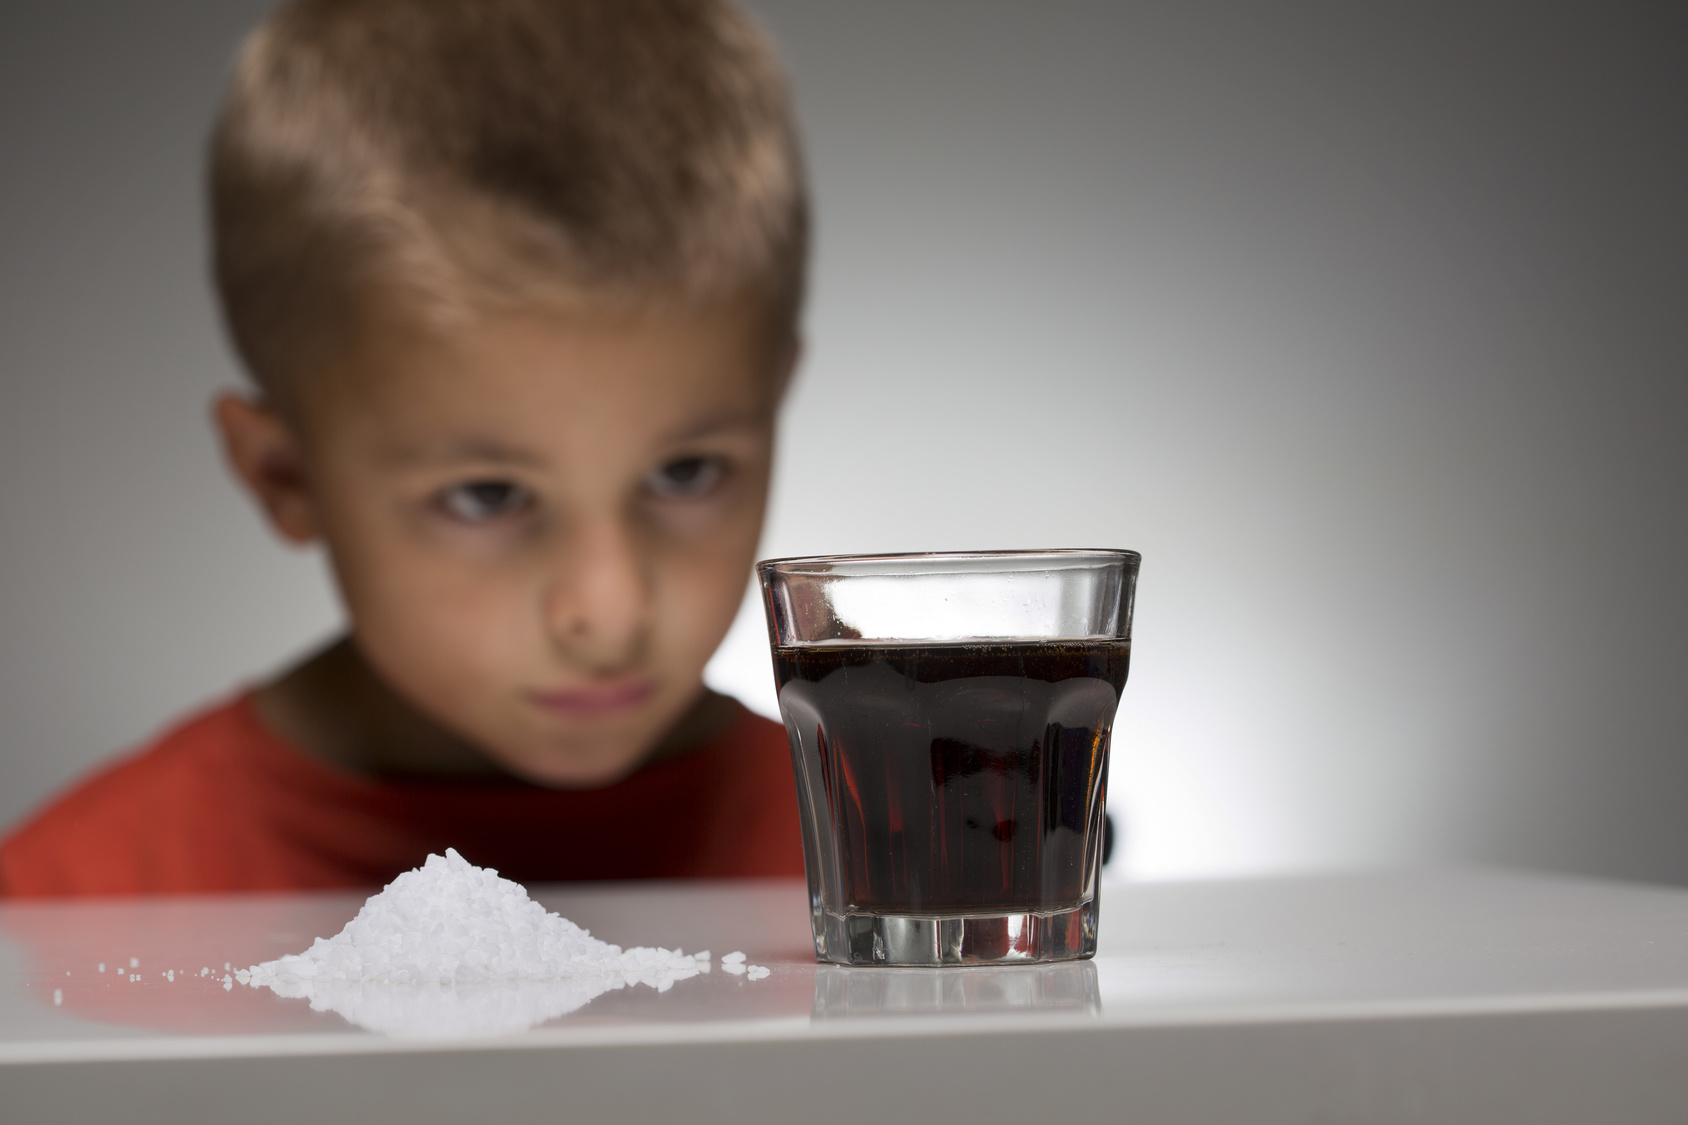 Concept photo of a child in front of a soft drink with sugar. The over-consumption of sugar-sweetened soft drinks is associated with obesity, type 2 diabetes, dental caries, and low nutrient levels.